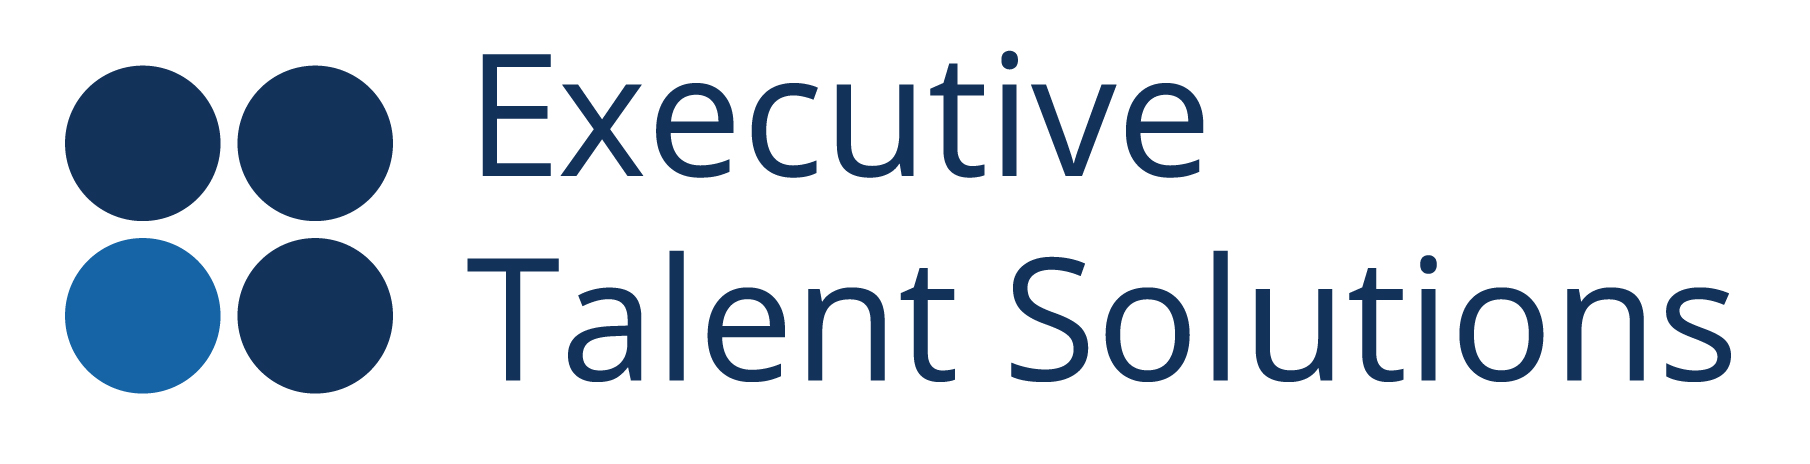 Executive talent solution logo